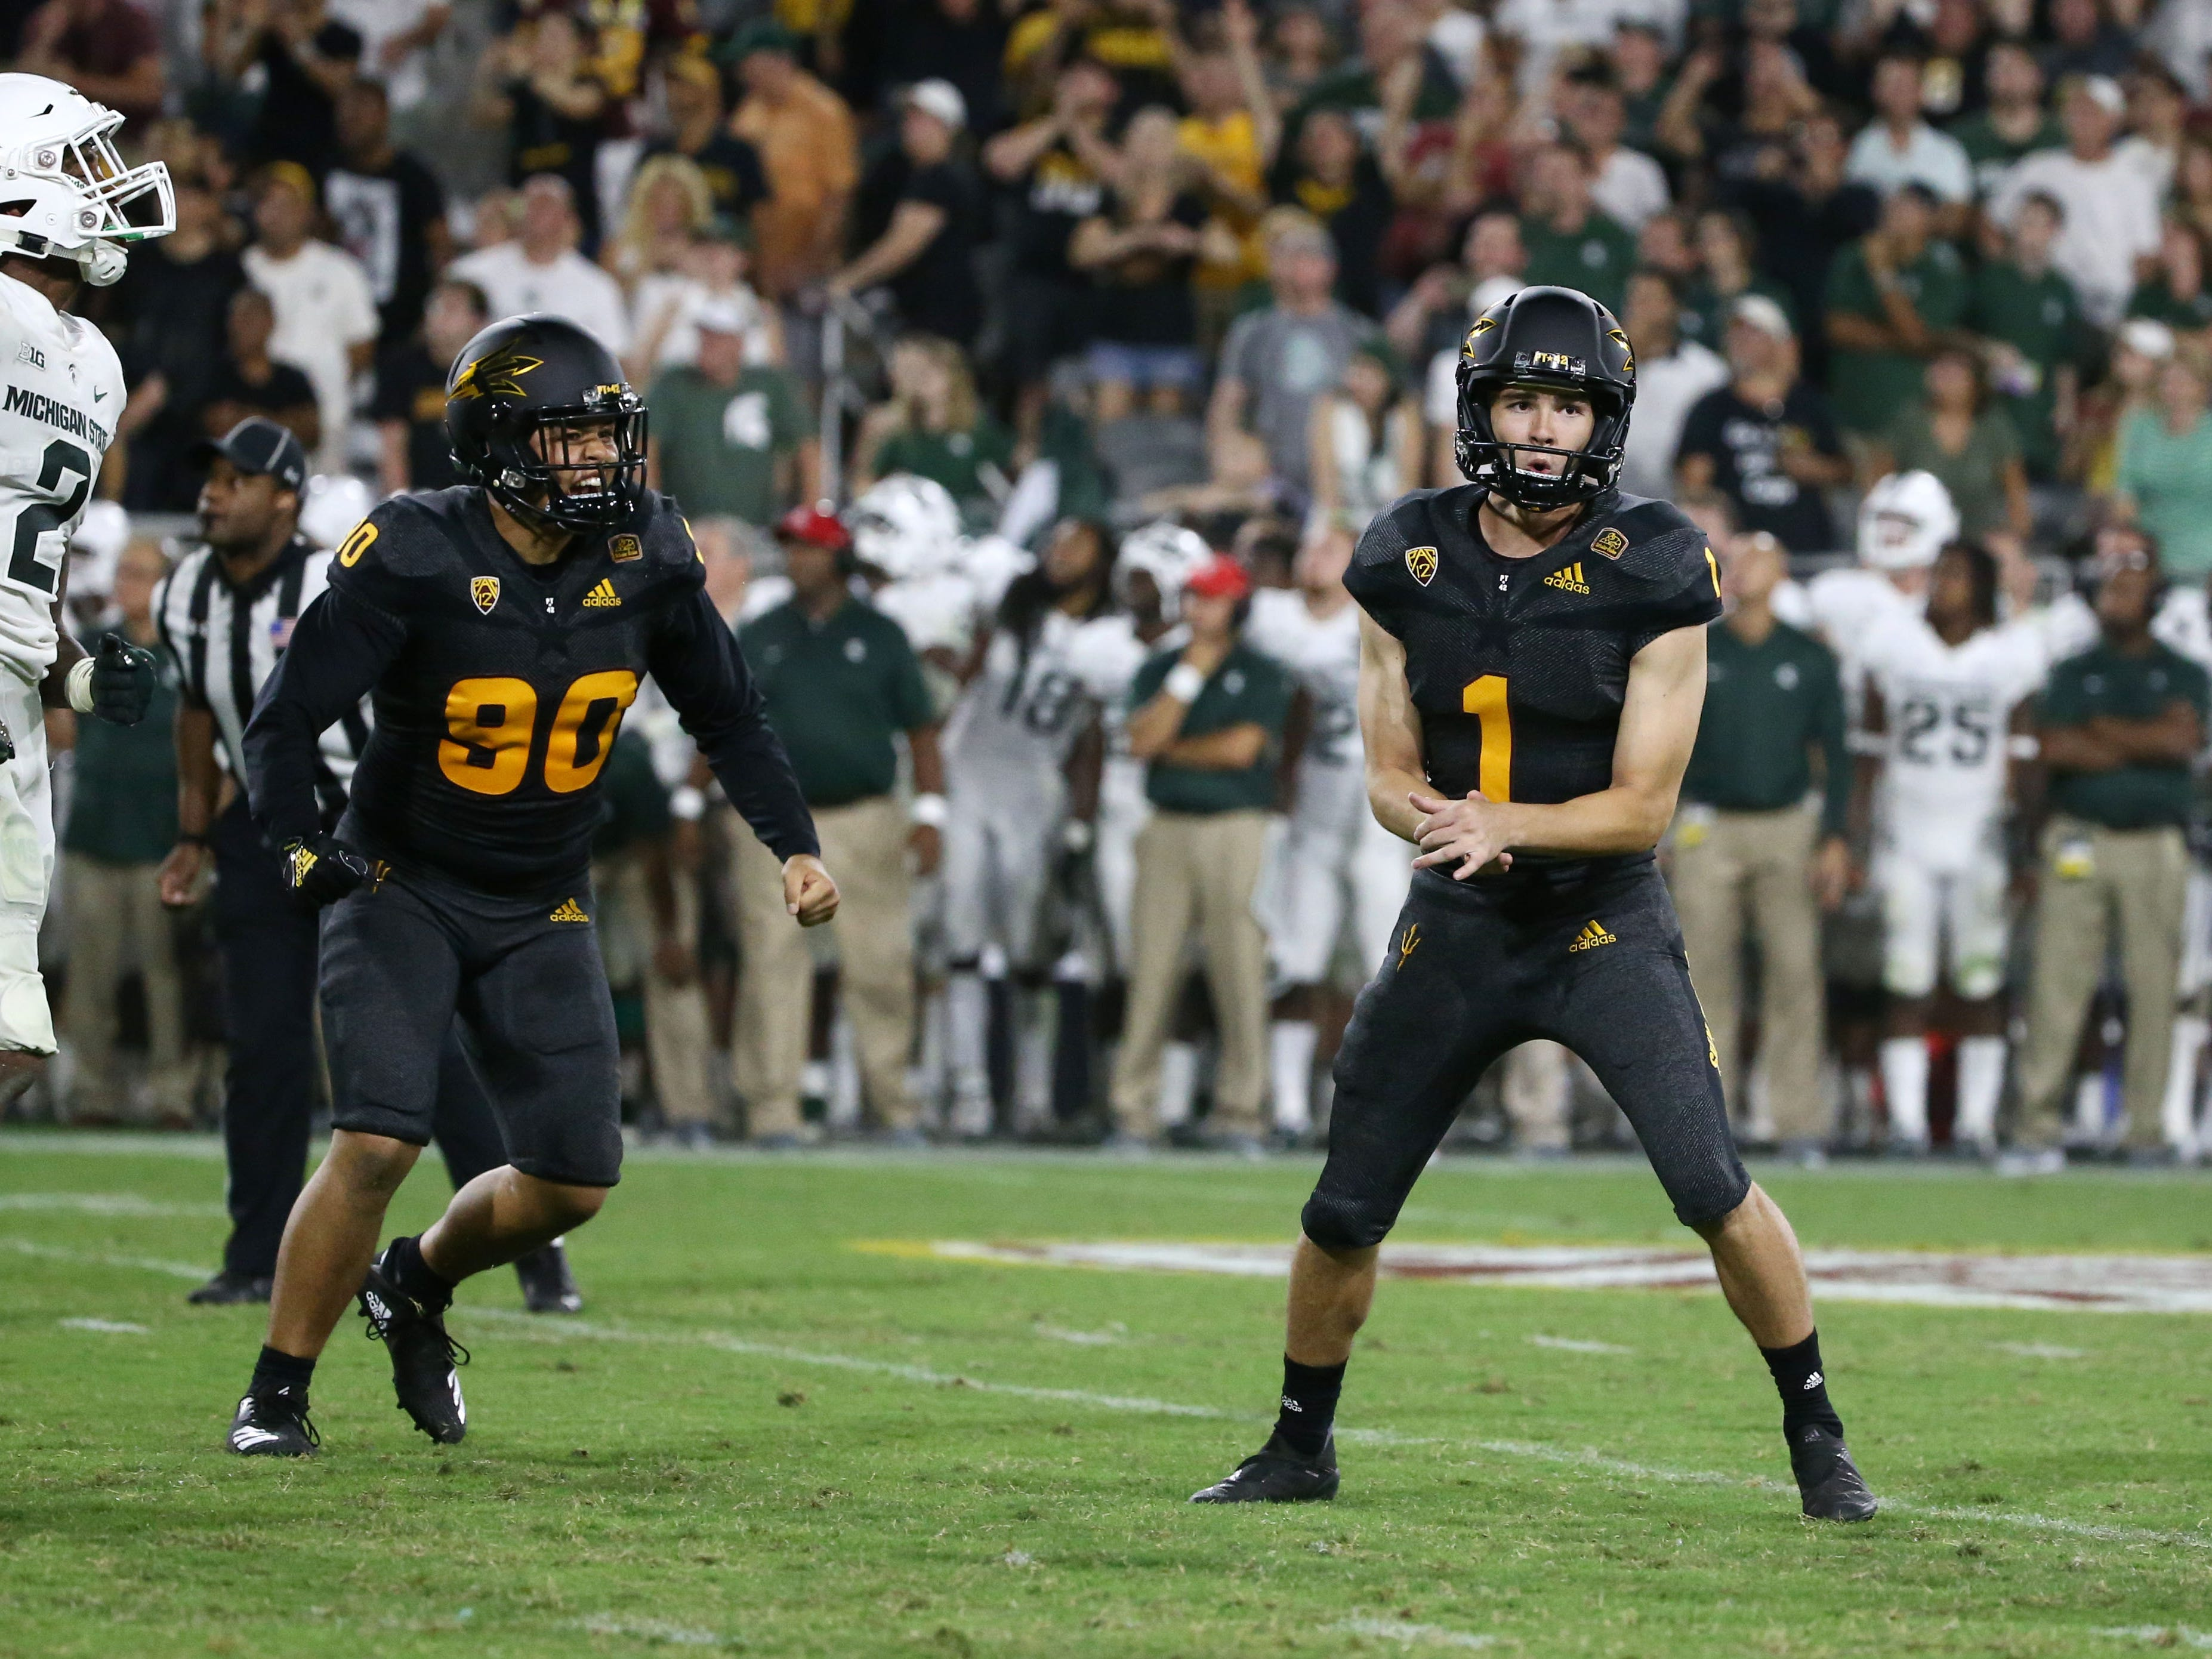 Arizona State place kicker Brandon Ruiz reacts after kicking the winning field goal to defeat Michigan State 16-13 on Sep. 8, 2018, at Sun Devil Stadium.